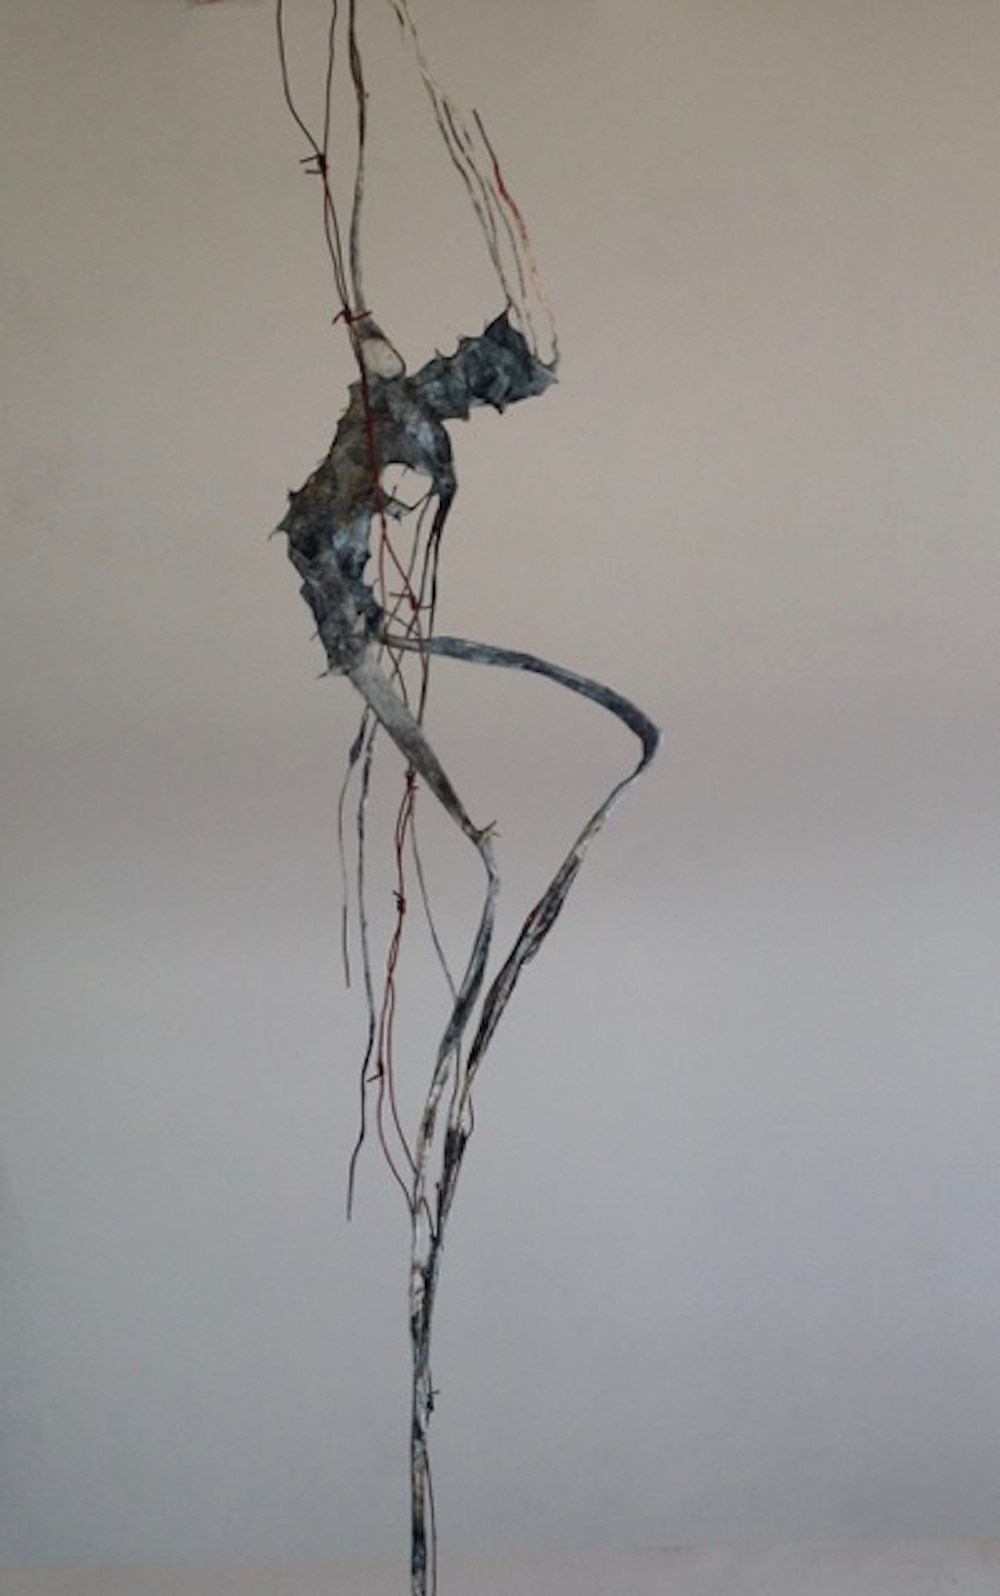 Verstrickt no 2, original Abstract Metal Sculpture by Alexius Wichtler